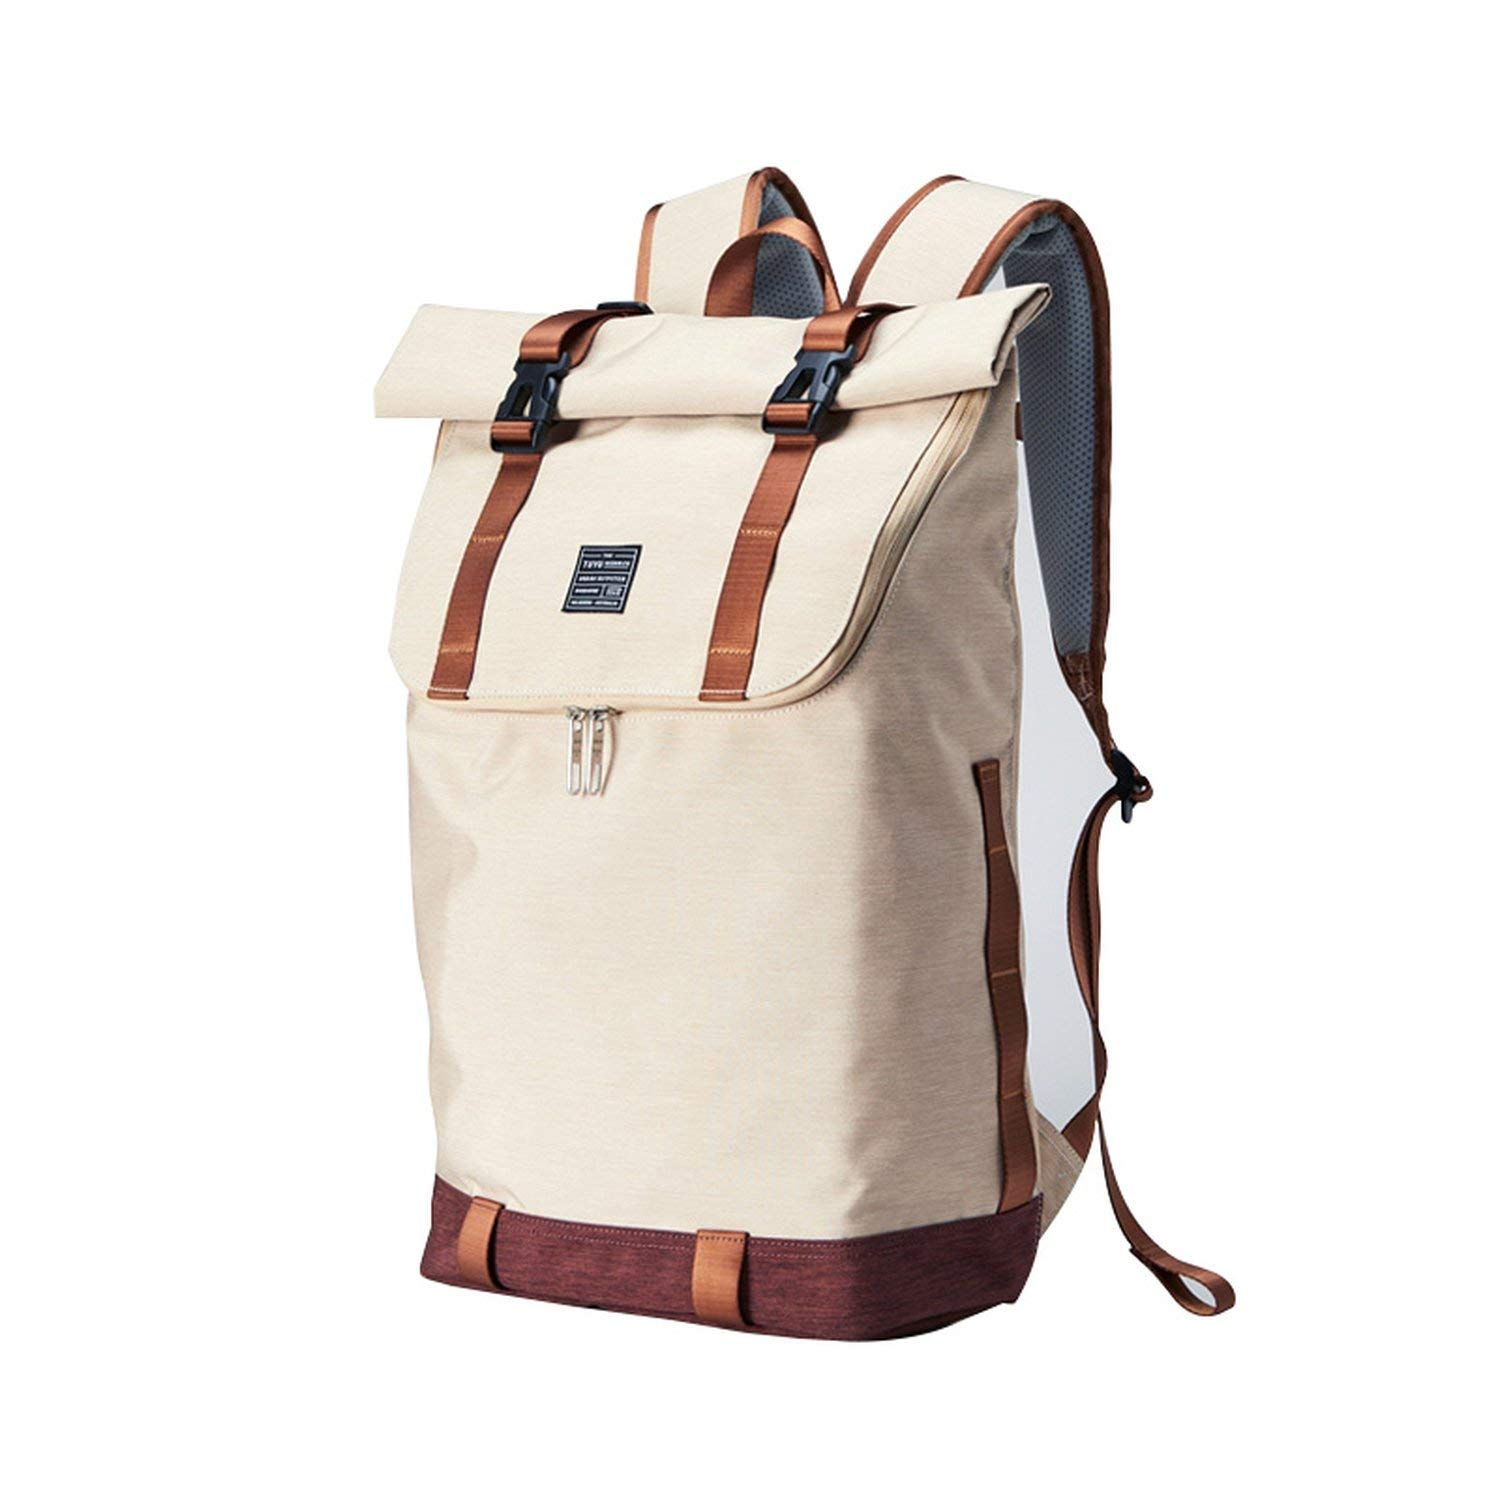 2019 unisex backpack teenager boys and girls vintage casual travel backpack large capacity canvas backpacks,brown,18.5inch